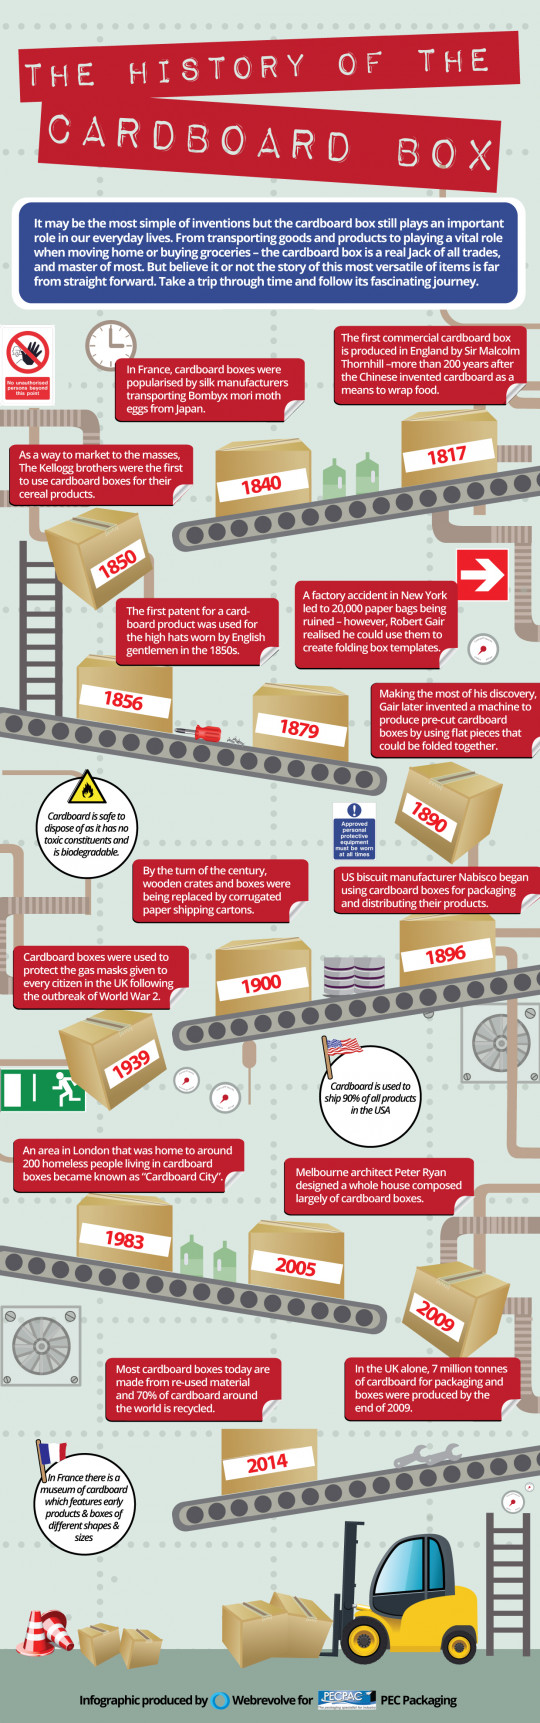 The History of the Cardboard Box